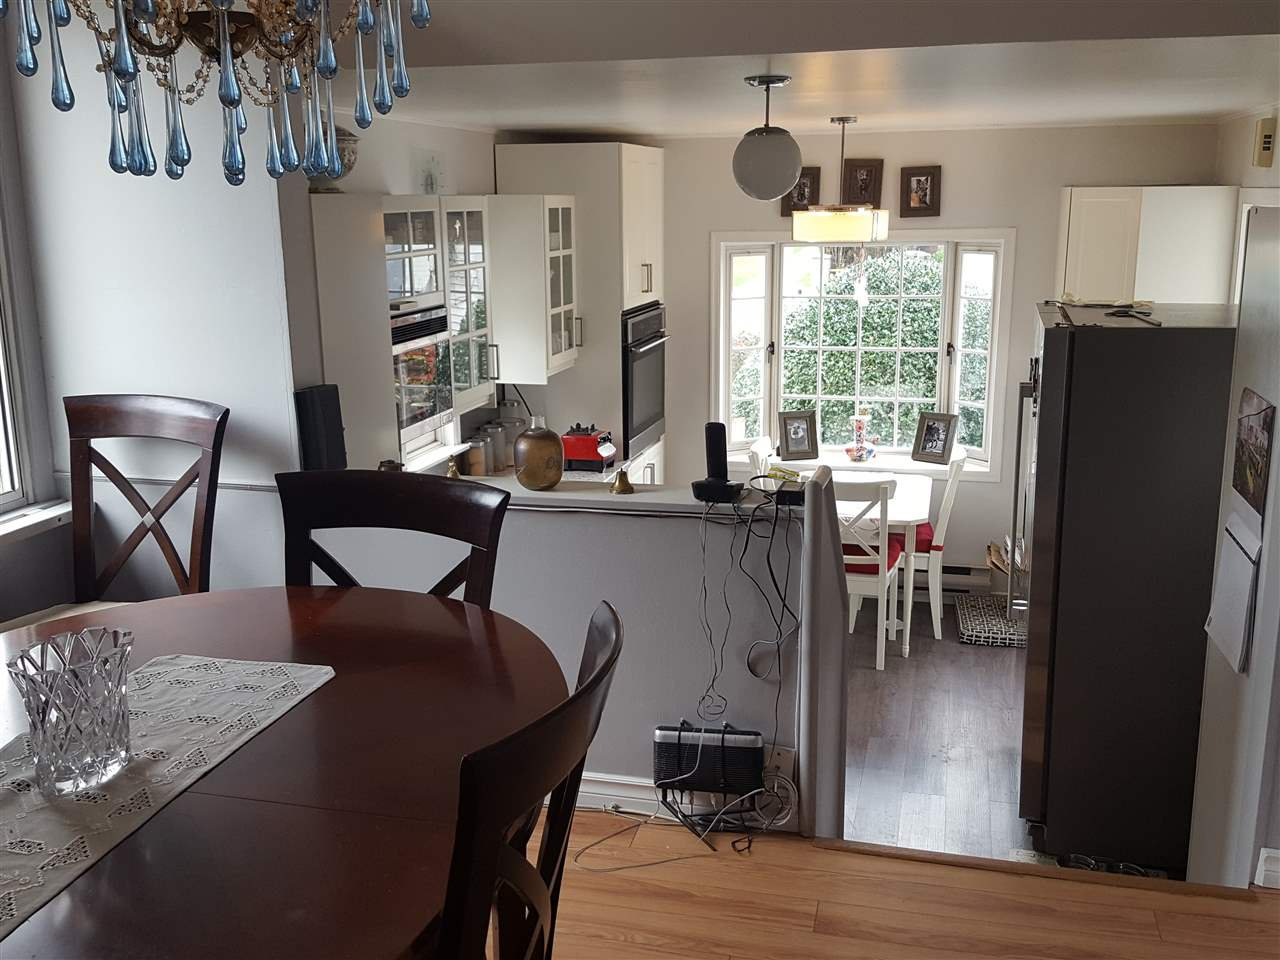 Photo 6: Photos: 1599 W 63RD Avenue in Vancouver: South Granville House for sale (Vancouver West)  : MLS®# R2157245